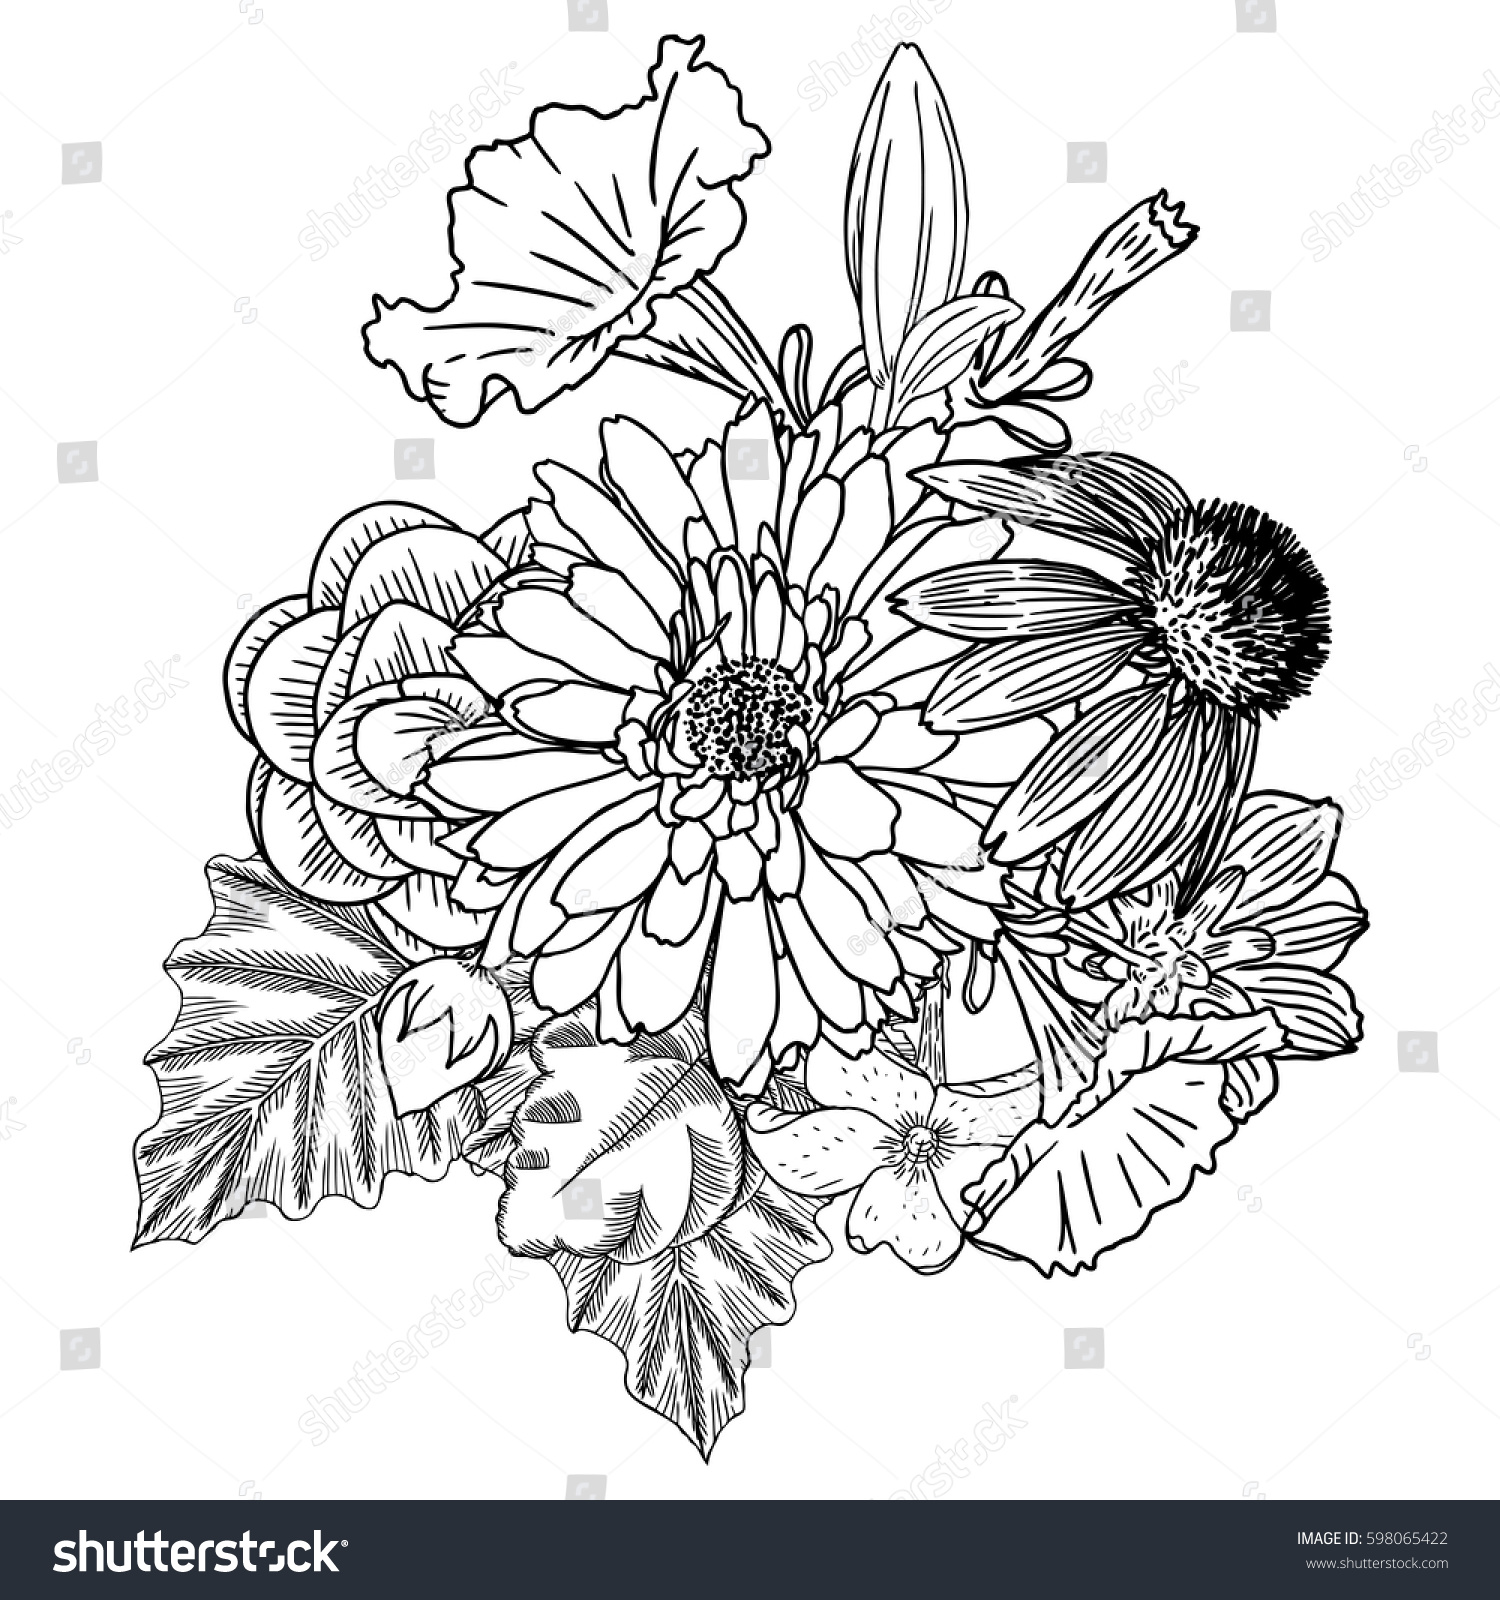 Flowers bouquet of different hand drawn flowers vintage black flowers bouquet of different hand drawn flowers vintage black white and isolated can be used as invitation greeting card print raster ez canvas izmirmasajfo